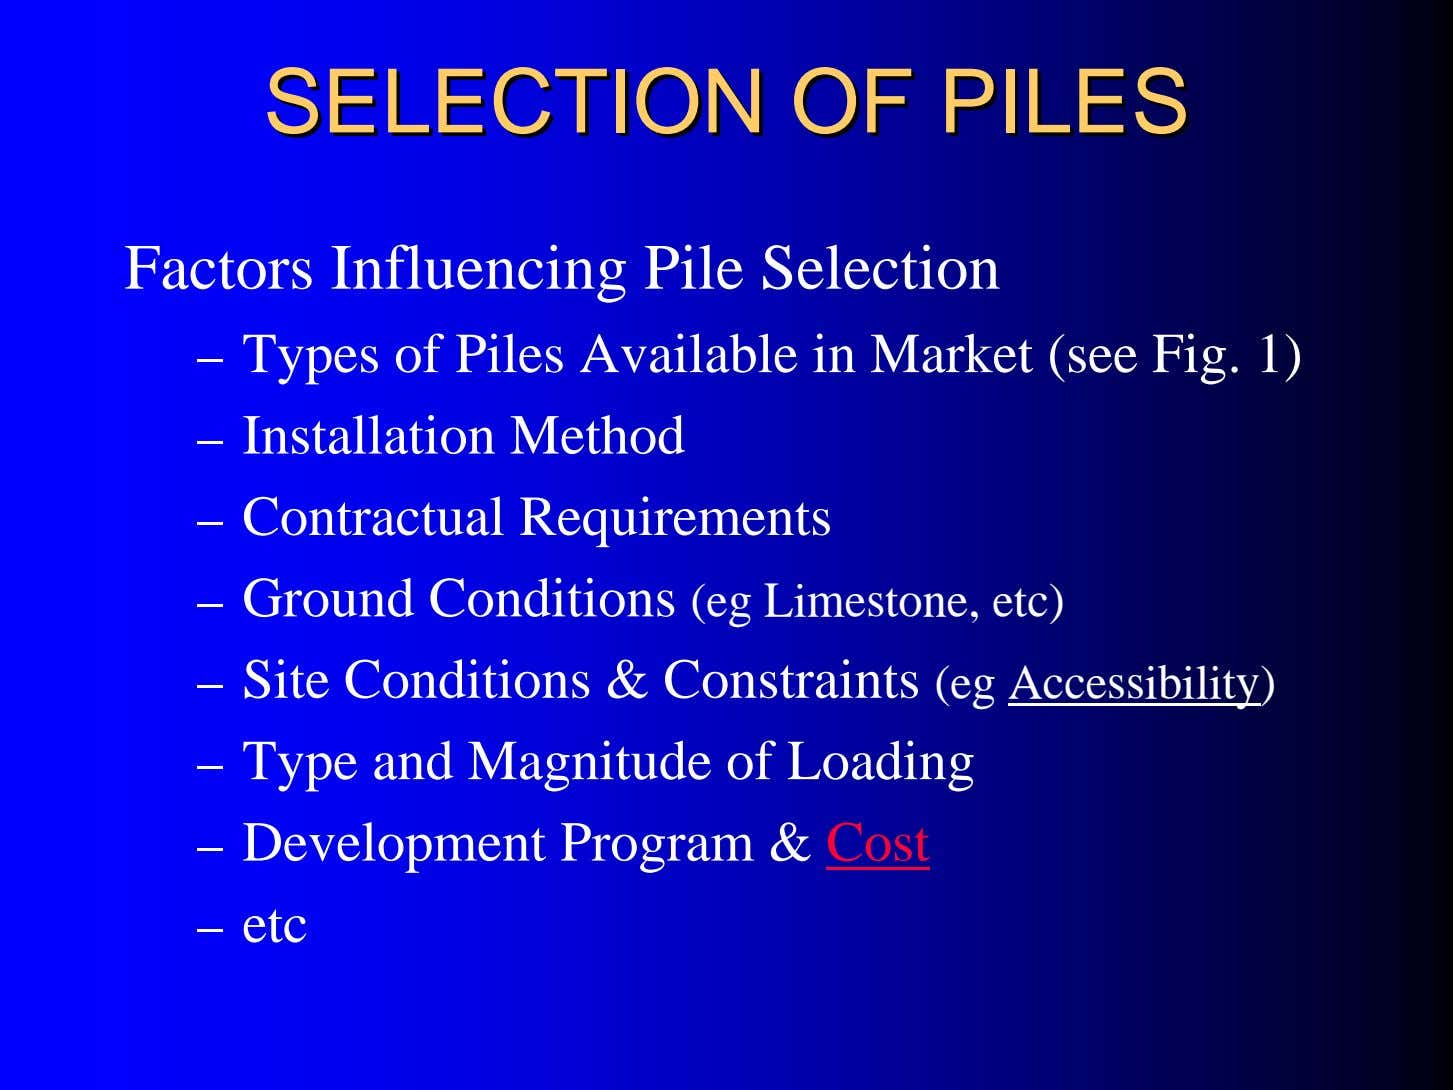 SELECTIONSELECTION OFOF PILESPILES Factors Influencing Pile Selection – Types of Piles Available in Market (see